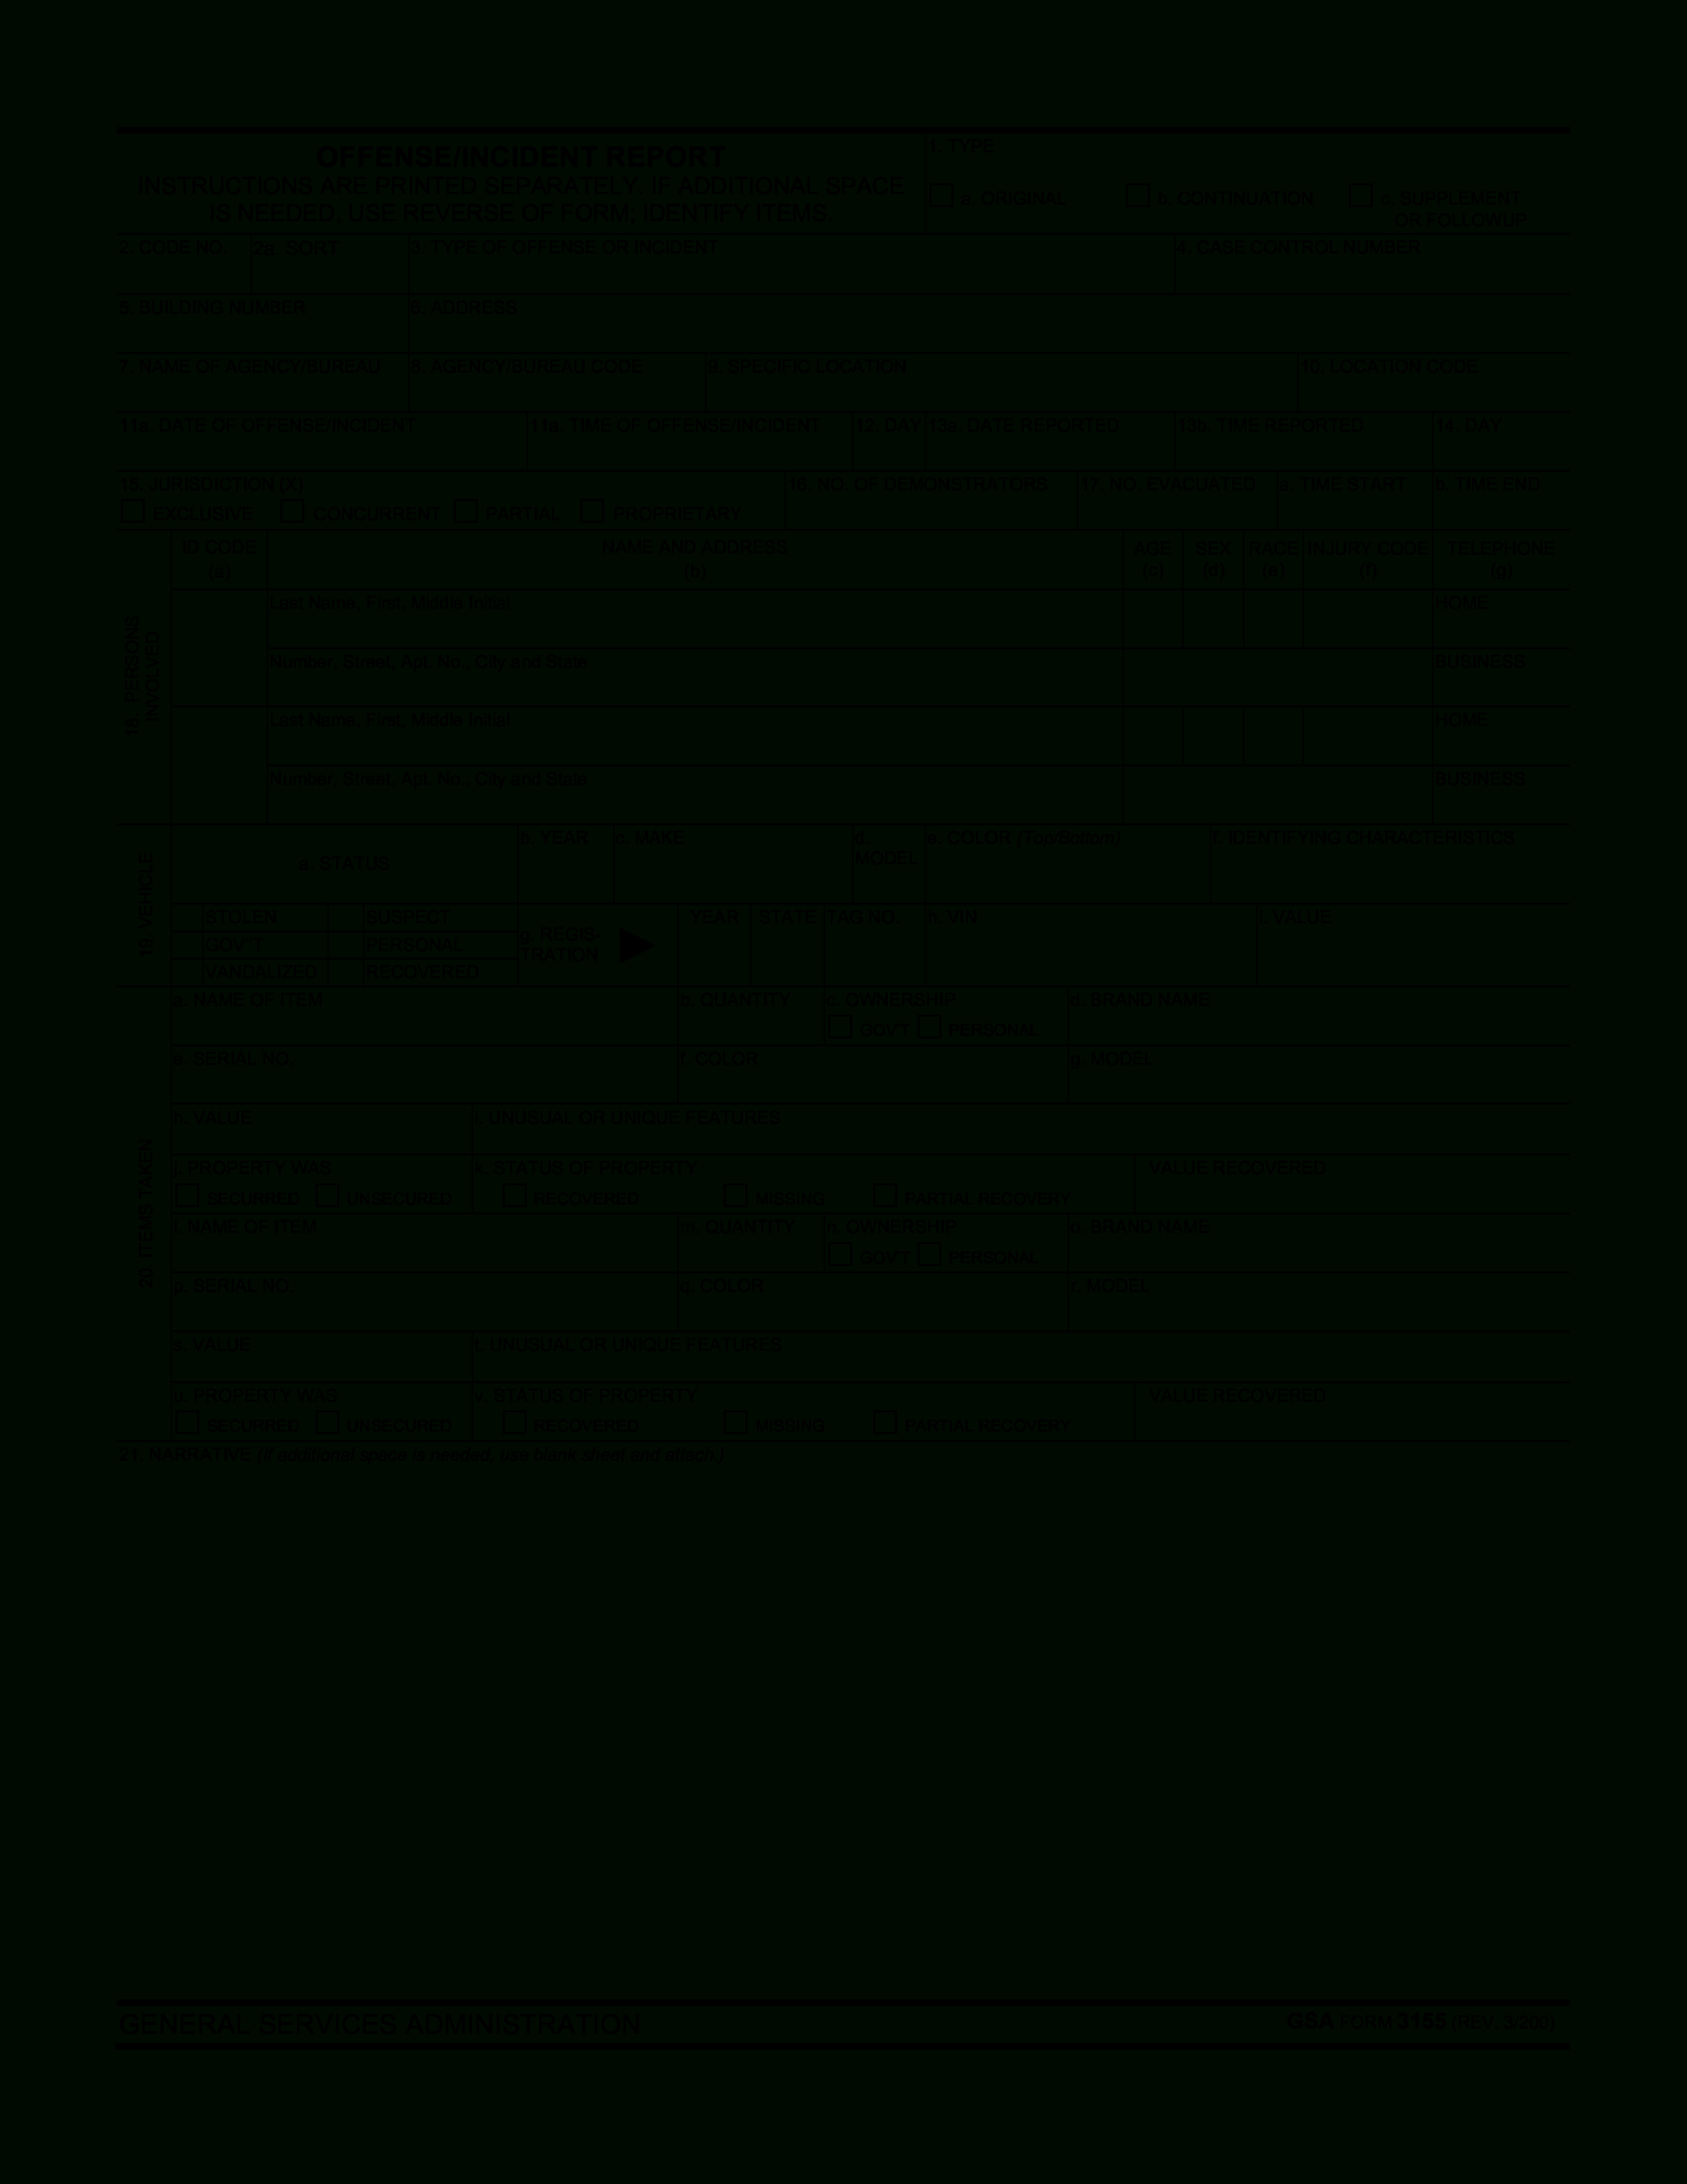 Blank Police Report Template | Templates At For Blank Police Report Template